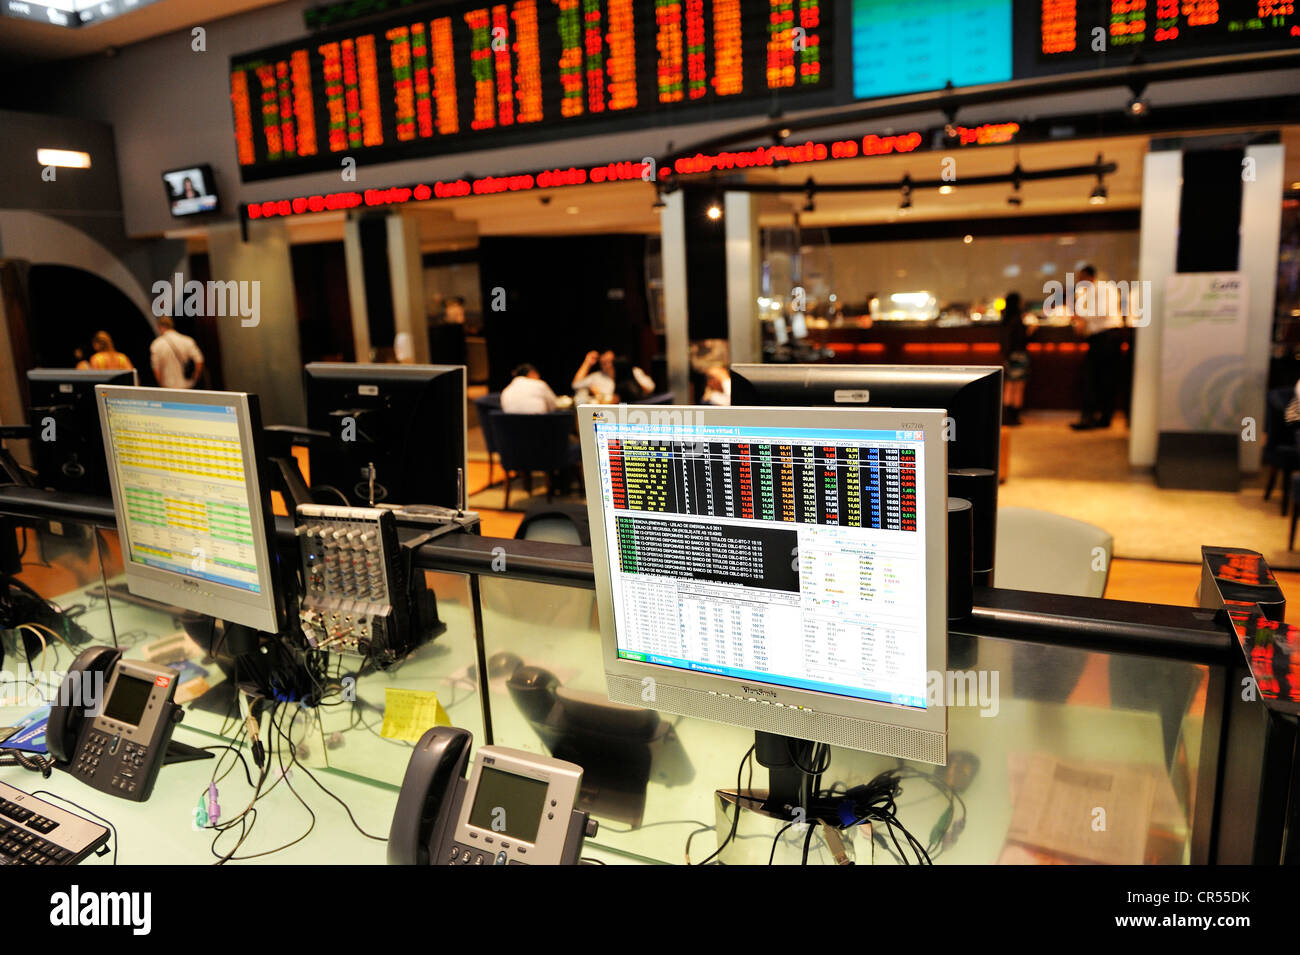 Computer monitors and displays with stock market prices, visitor centre of Bovespa, the Sao Paulo Stock Exchange, - Stock Image